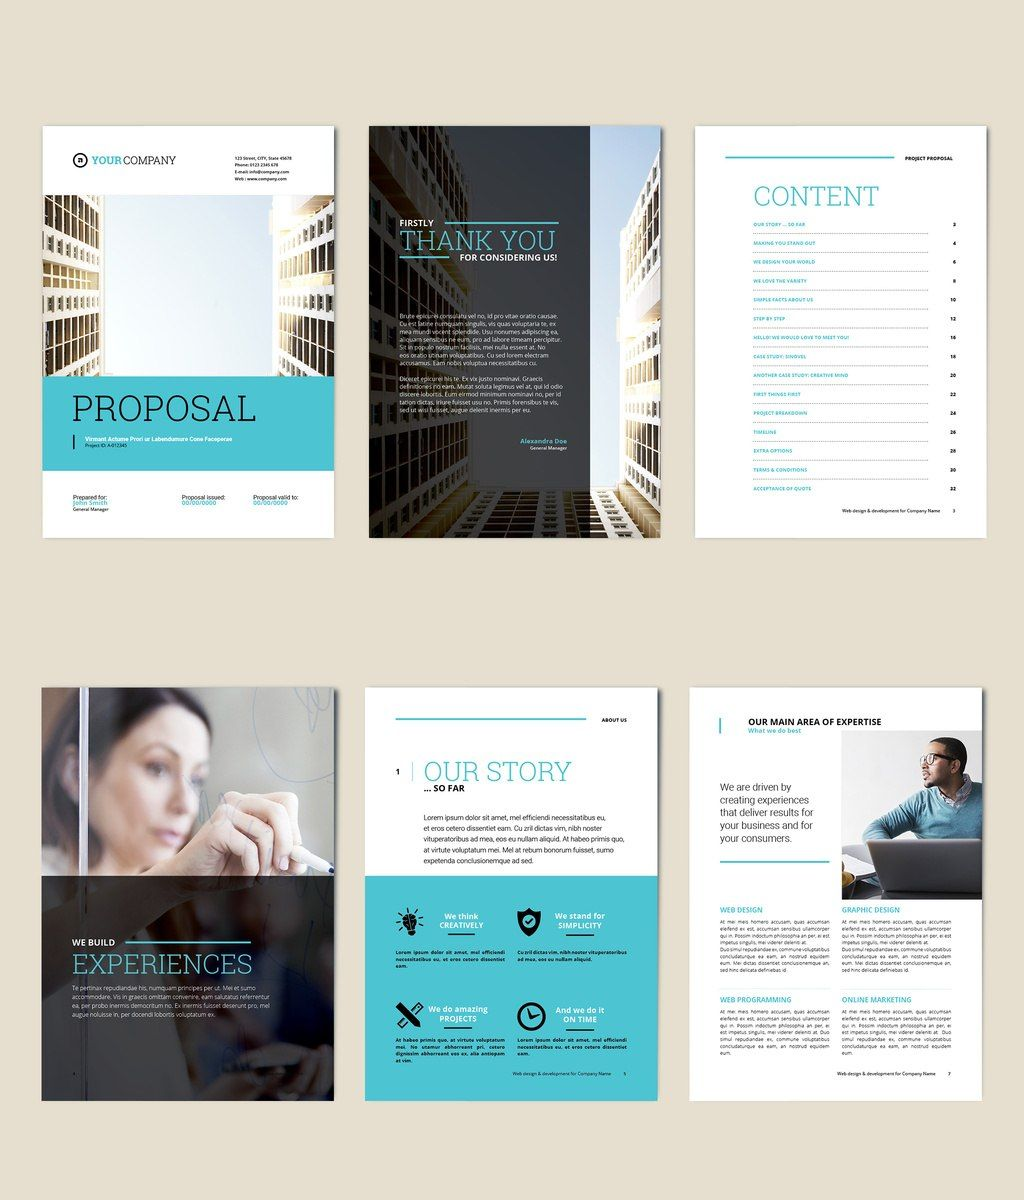 20 Best Indesign Brochure Templates: Free Artistmade Templates Now In Indesign Creative Cloud